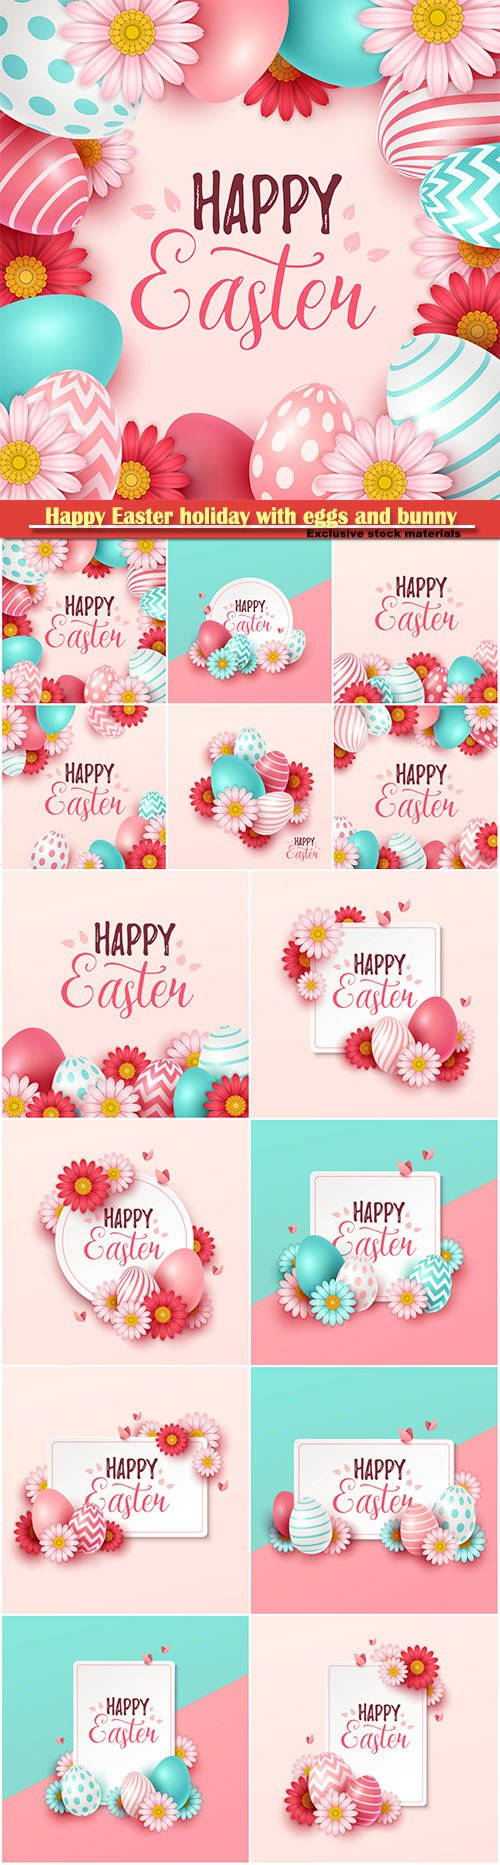 Happy Easter holiday with eggs and bunny, vector illustration # 15